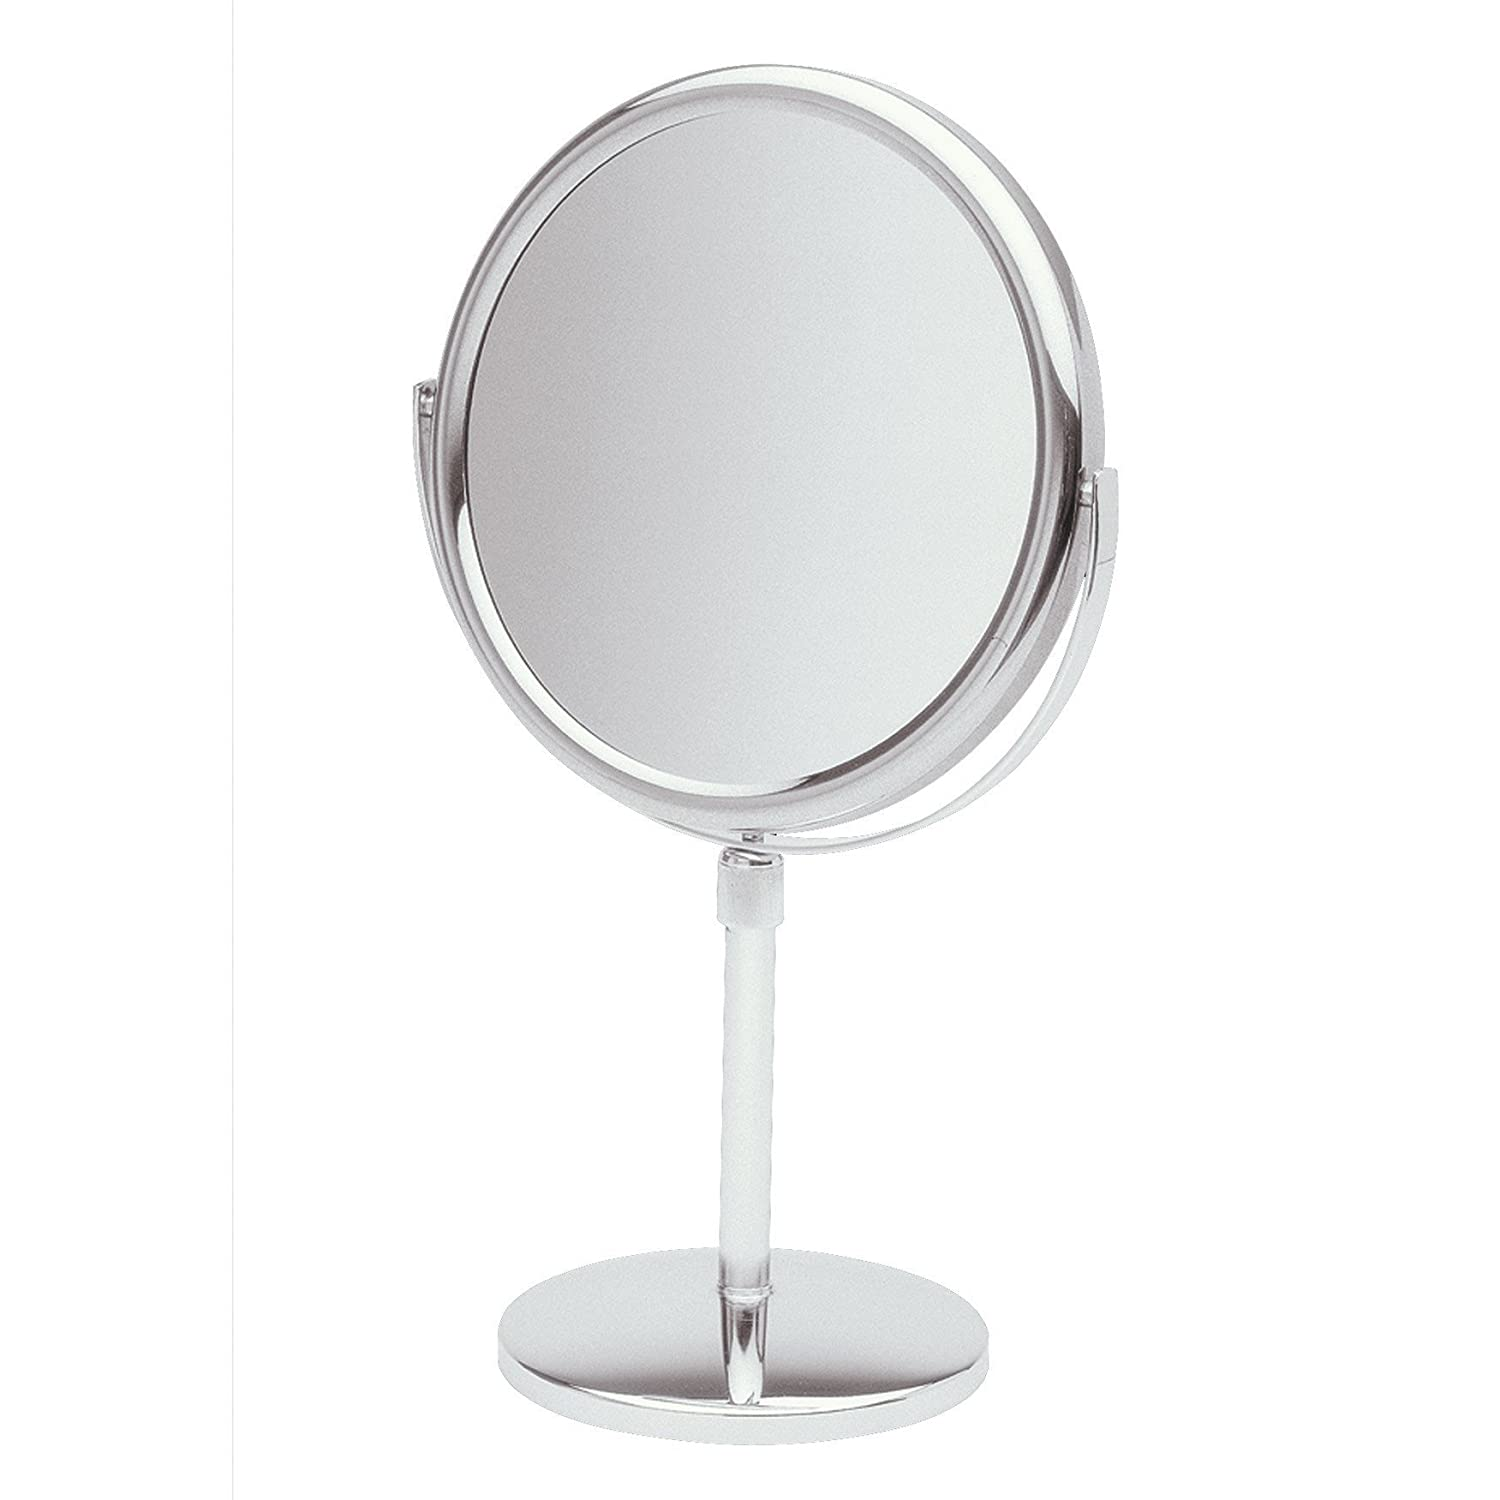 Jerdon JP4045N 9-Inch Tabletop Two-Sided Swivel Vanity Mirror with 5x Magnification, 16.5-Inch to 21.5-Inch Adjustable Height, Nickel Finish